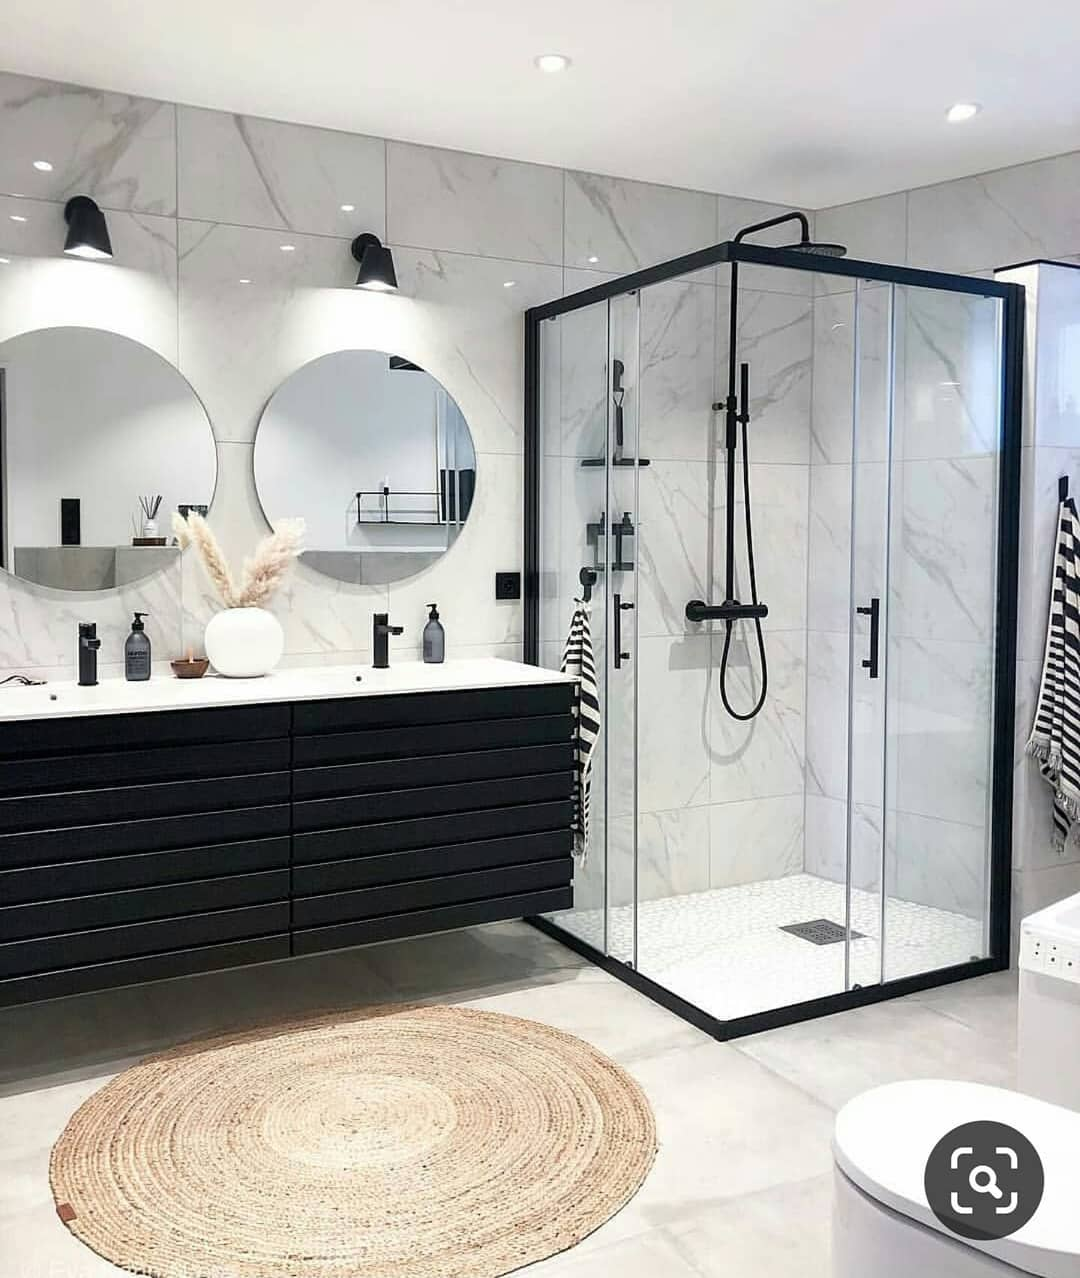 Gray or Black Tones in Your Bathroom (12)